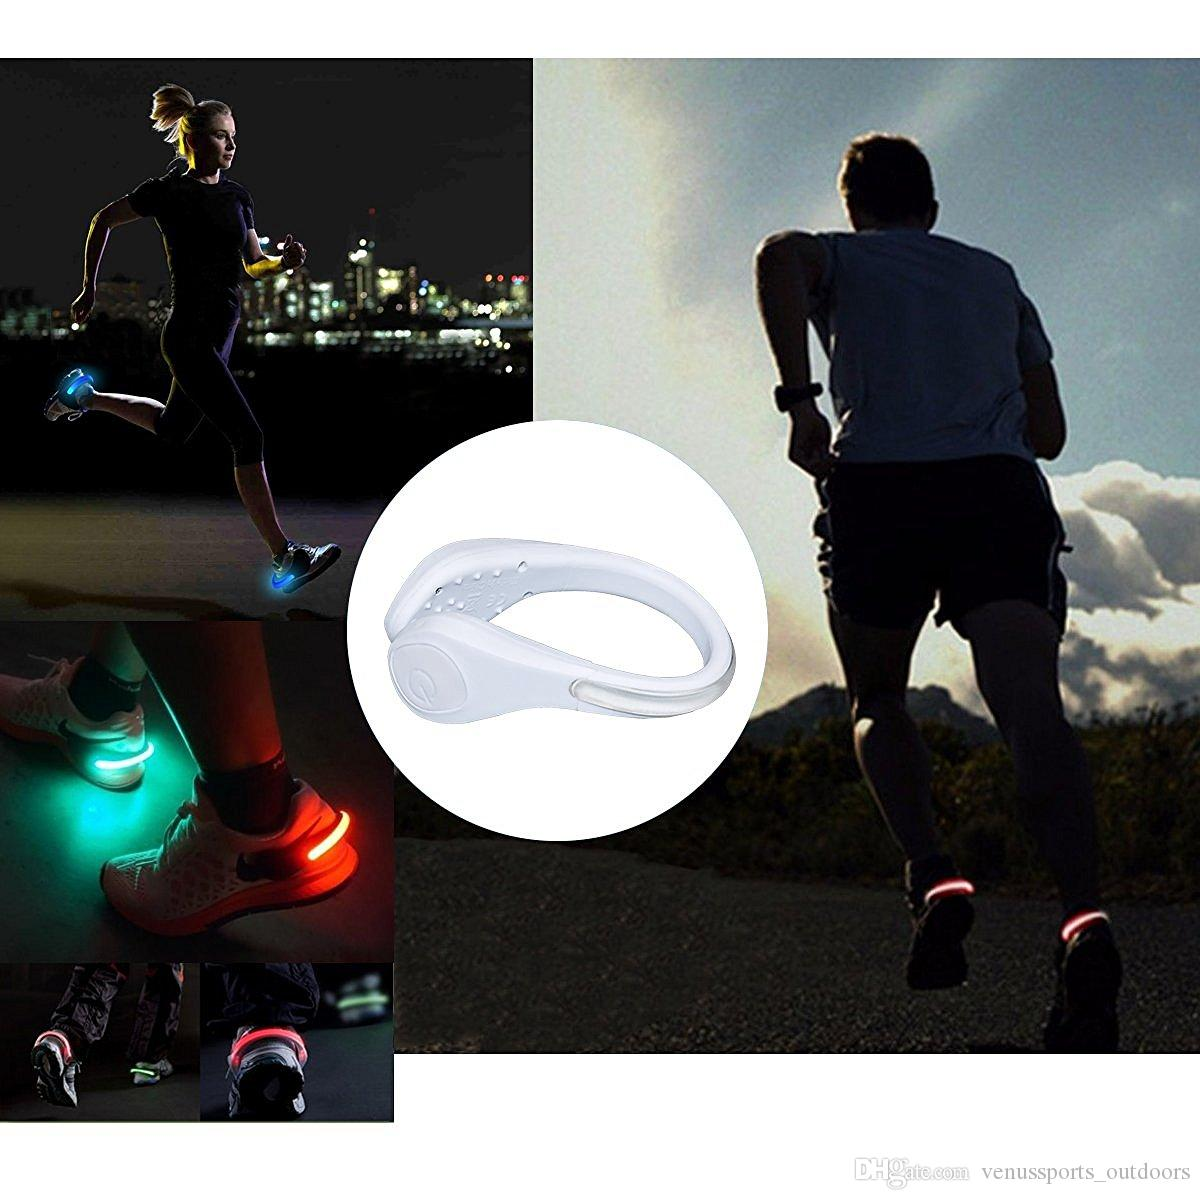 LED Flash Shoe Safety Clip Lights for Runners & Night Running Gear - Reflective Running Gear for Running, Jogging, Walking, Spinning